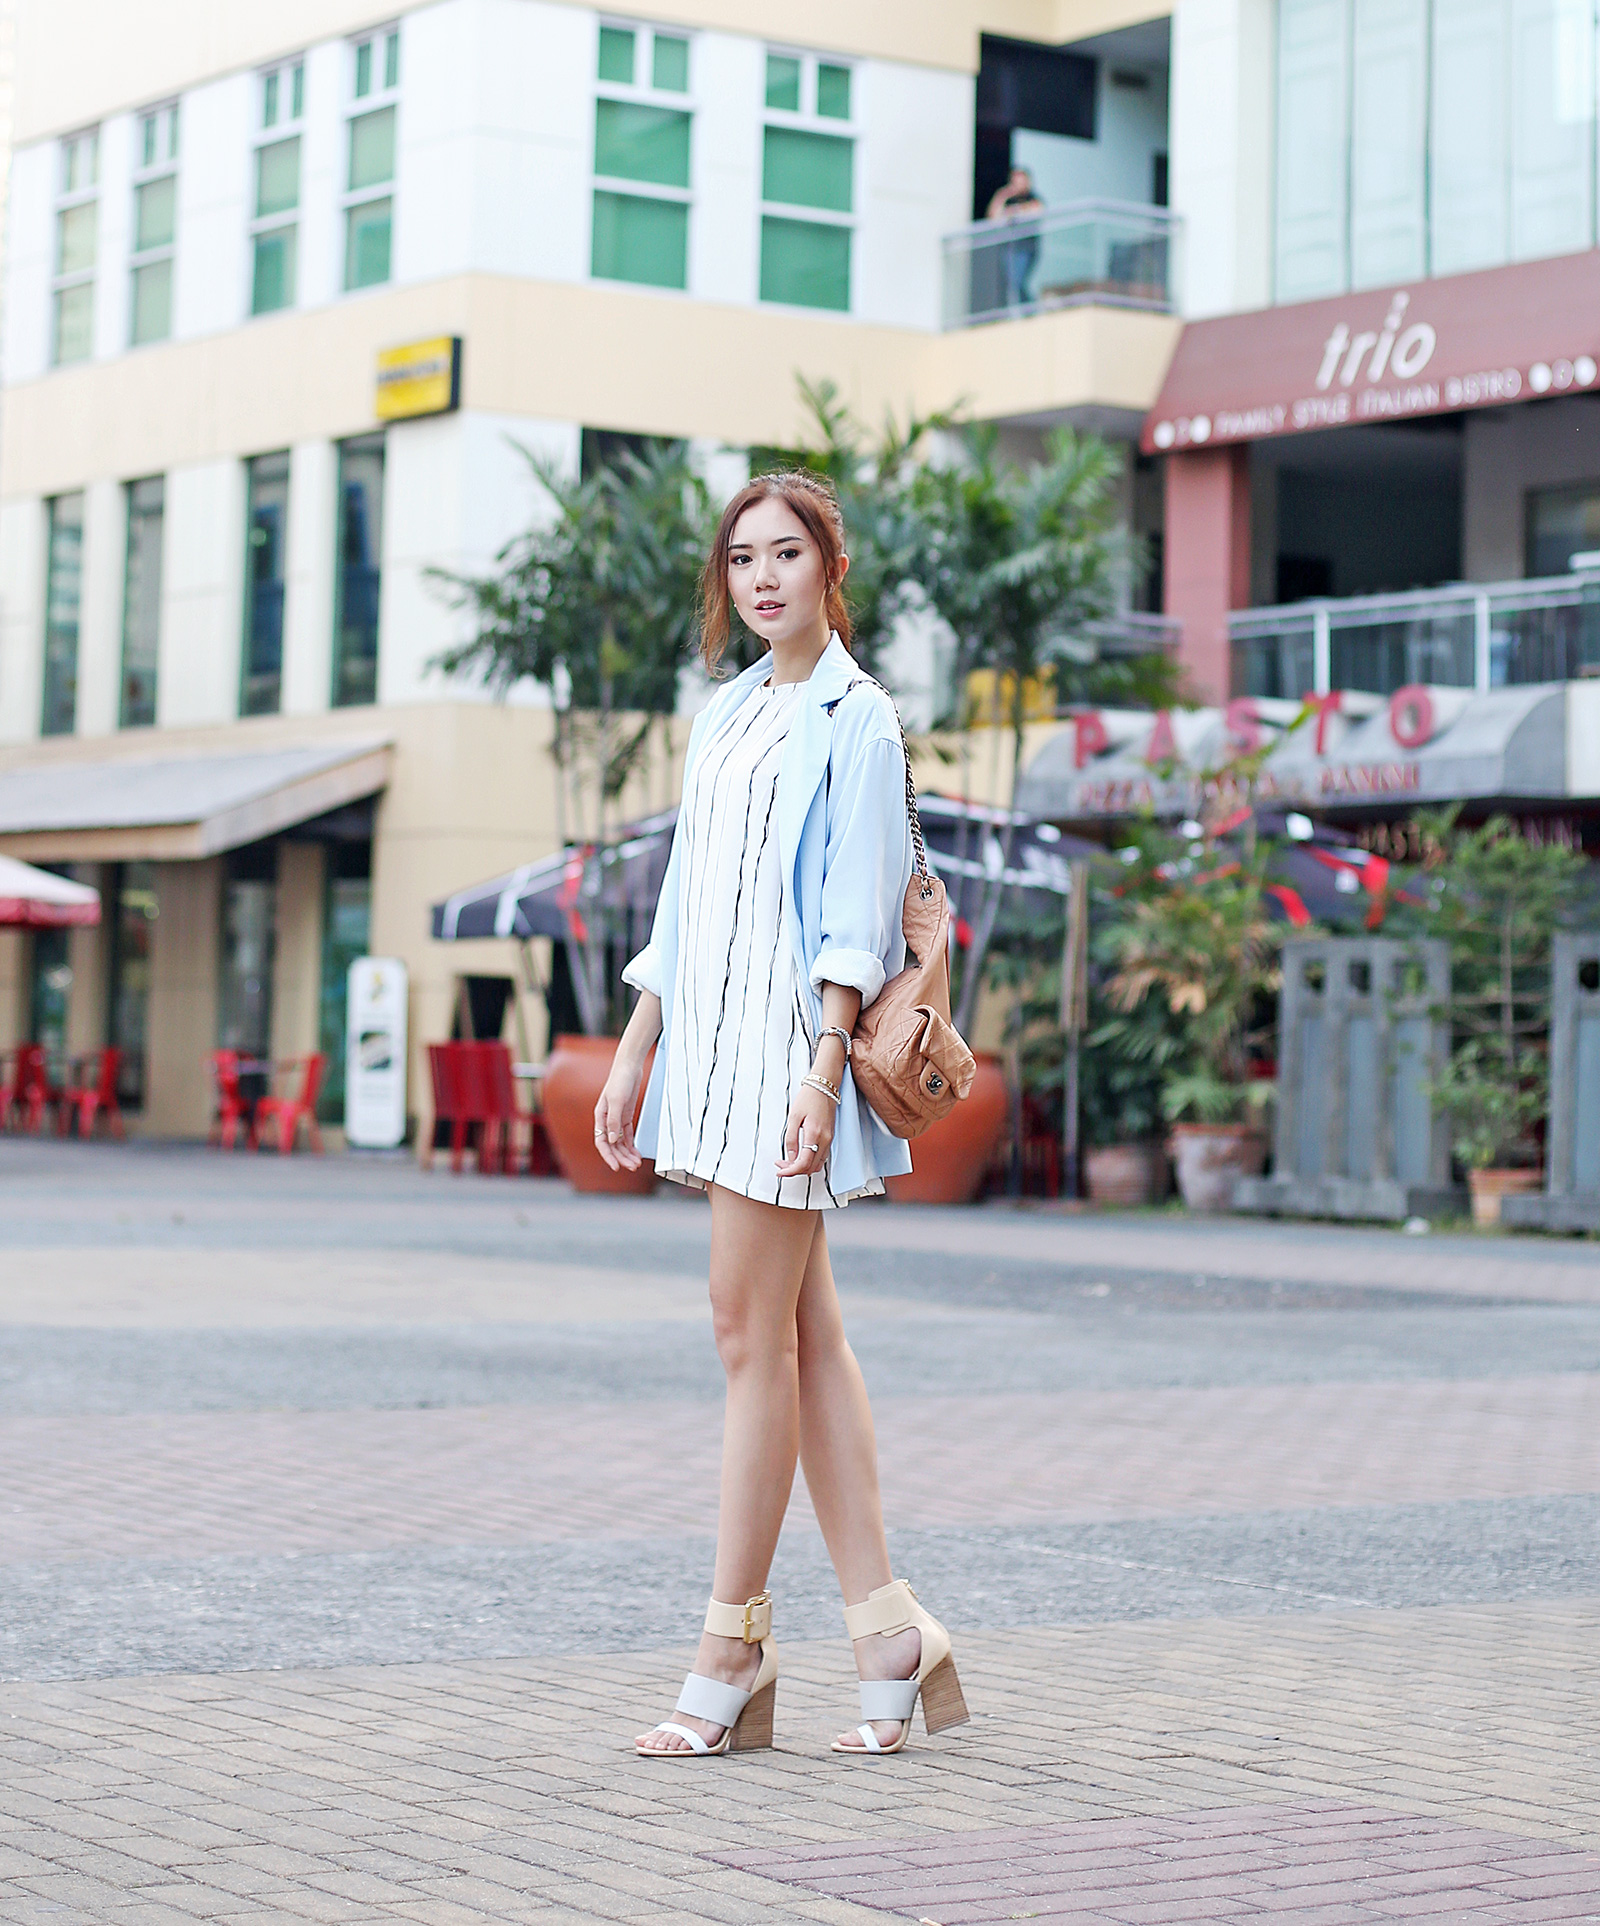 Beginning Boutique dress, Stradivarius blazer, Chanel backpack, Sigerson Morrison heels | www.itscamilleco.com